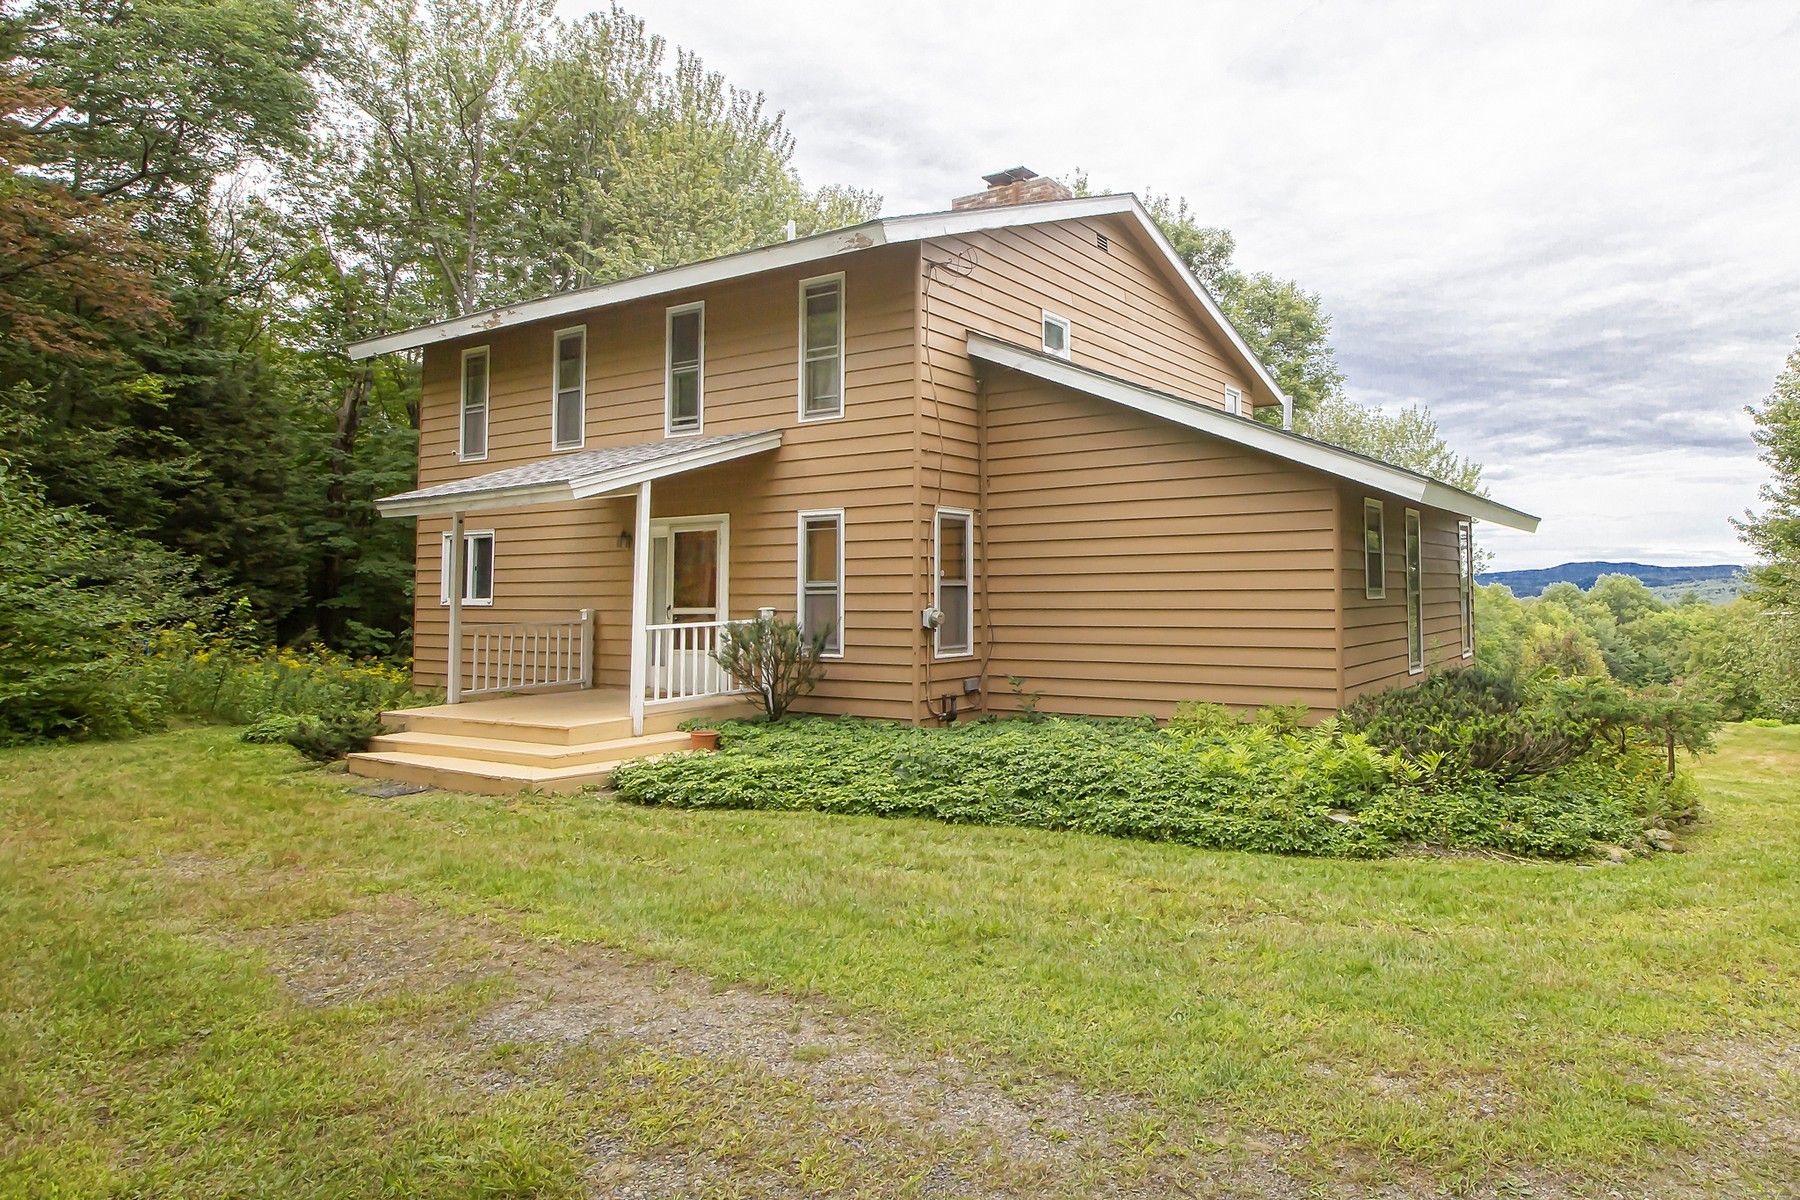 Single Family Homes for Sale at 248 Deer Hill Road, Whitingham 248 Deer Hill Rd Whitingham, Vermont 05361 United States